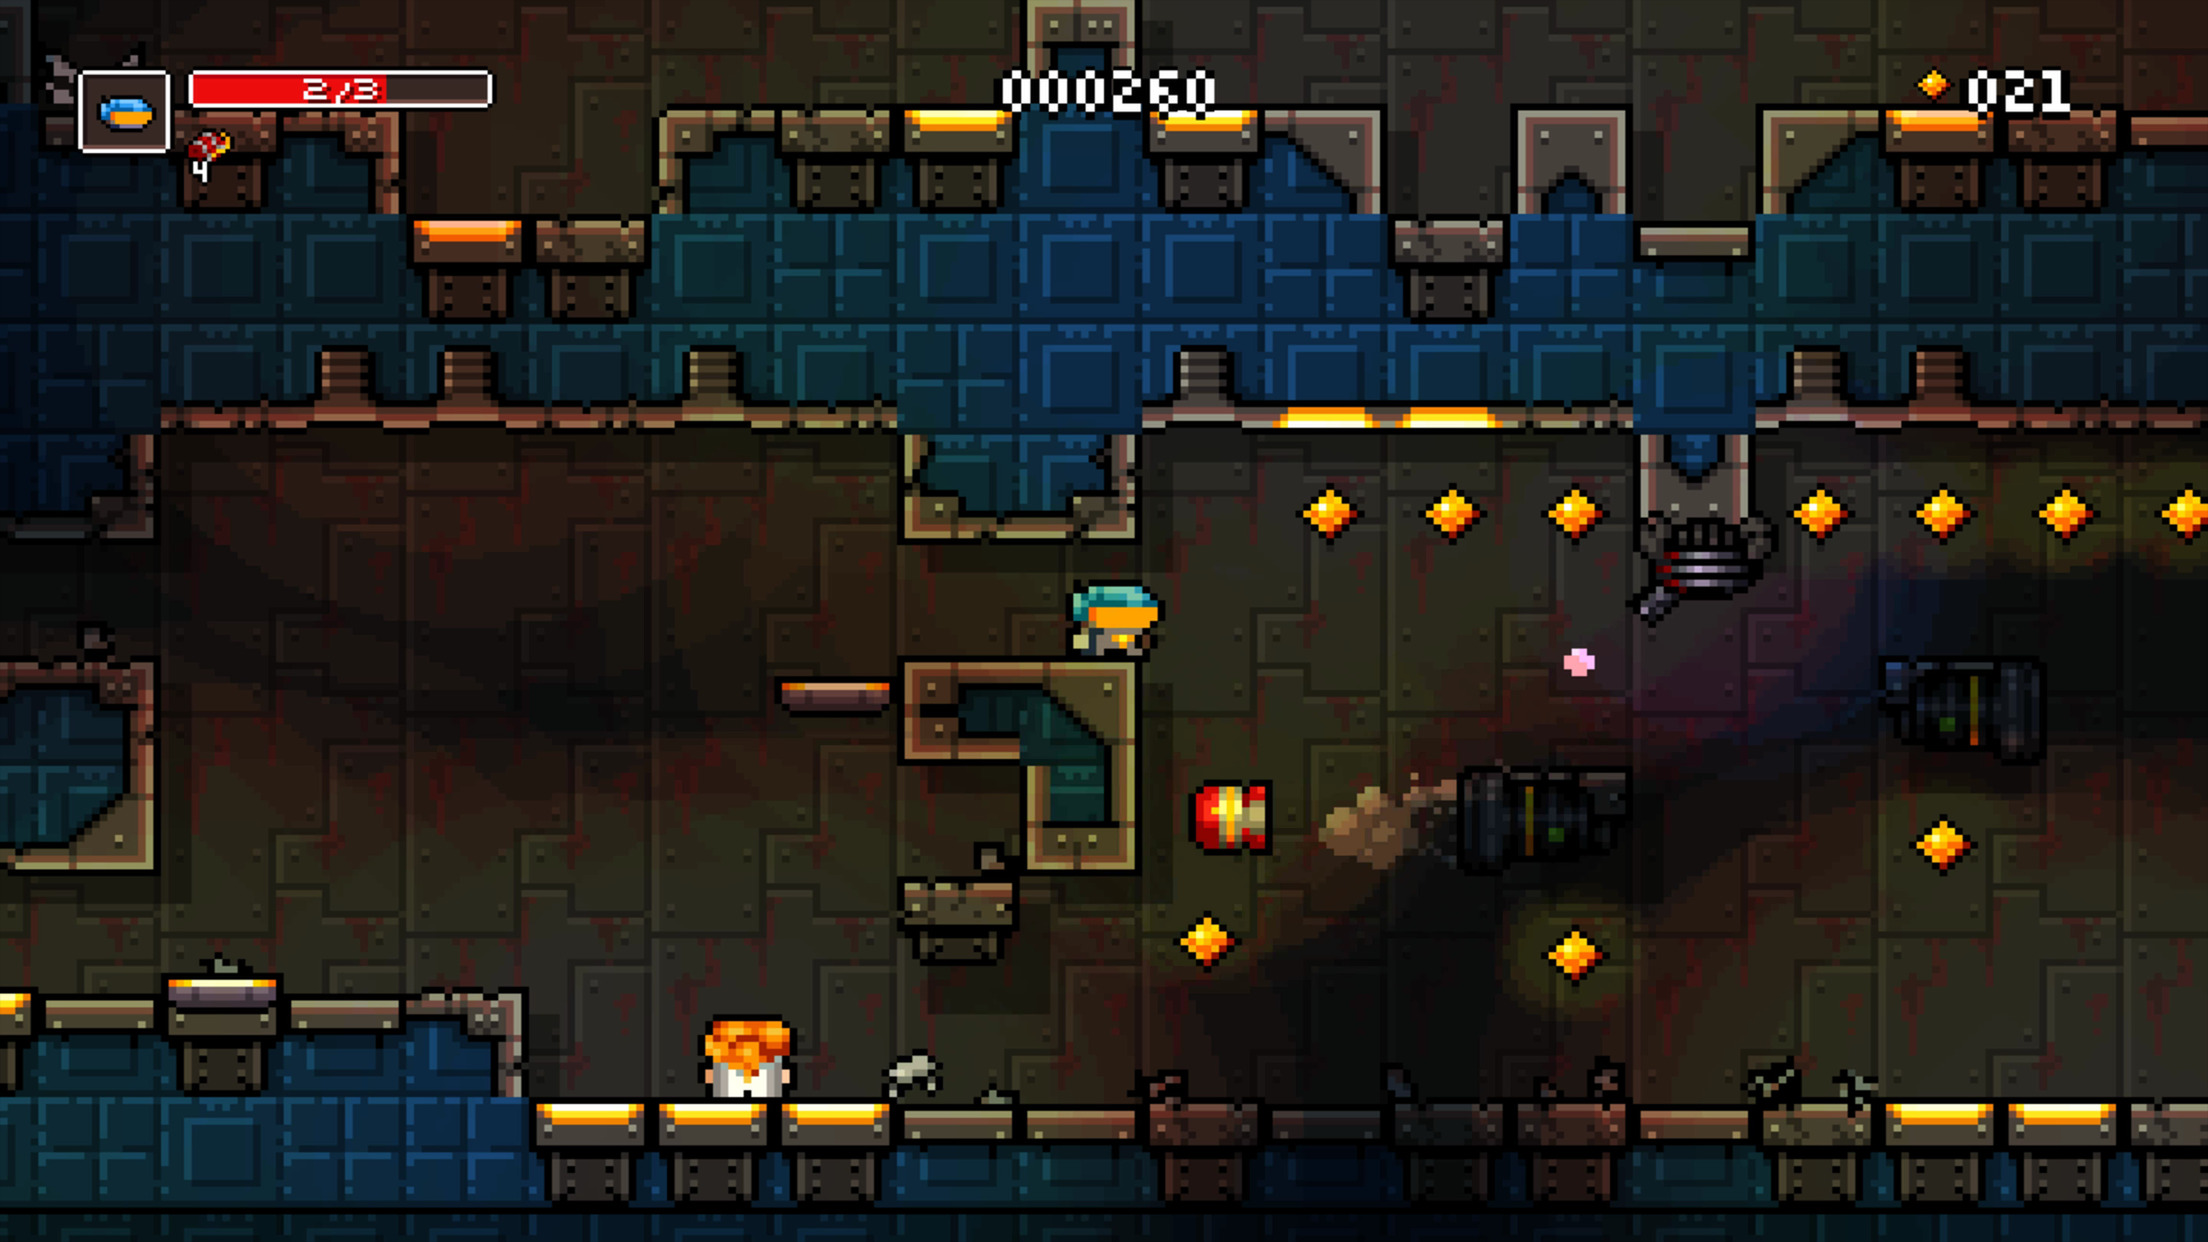 meganoid 2017 review the closest thing to spelunky on mobile